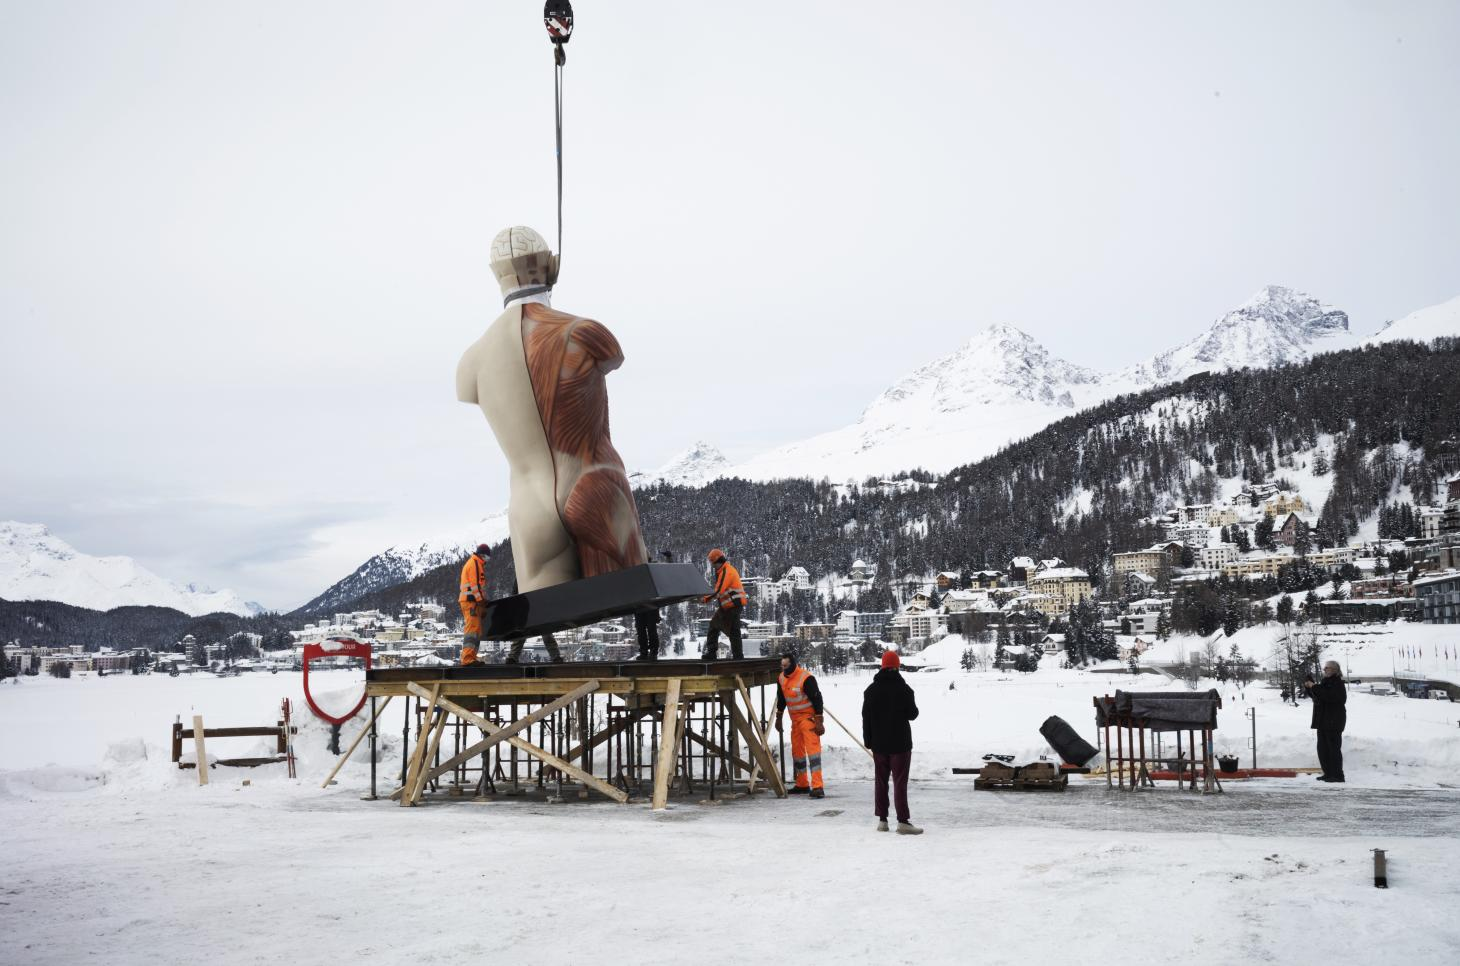 Photograph of Damien Hirst's Temple sculpture being installed on Lake St. Moritz